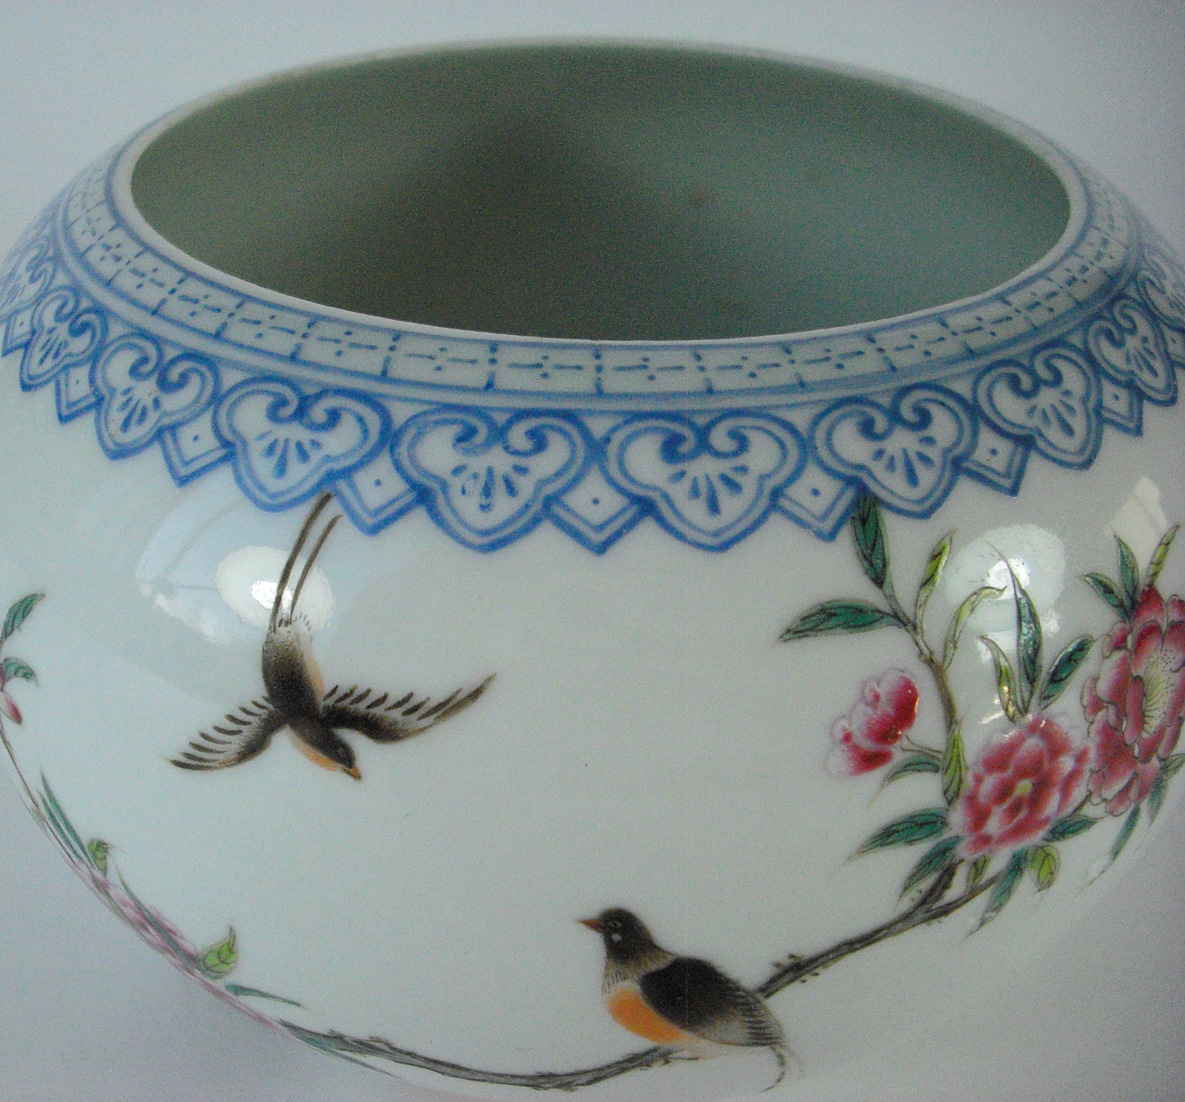 Fencai Brush Washer - Birds & Poem